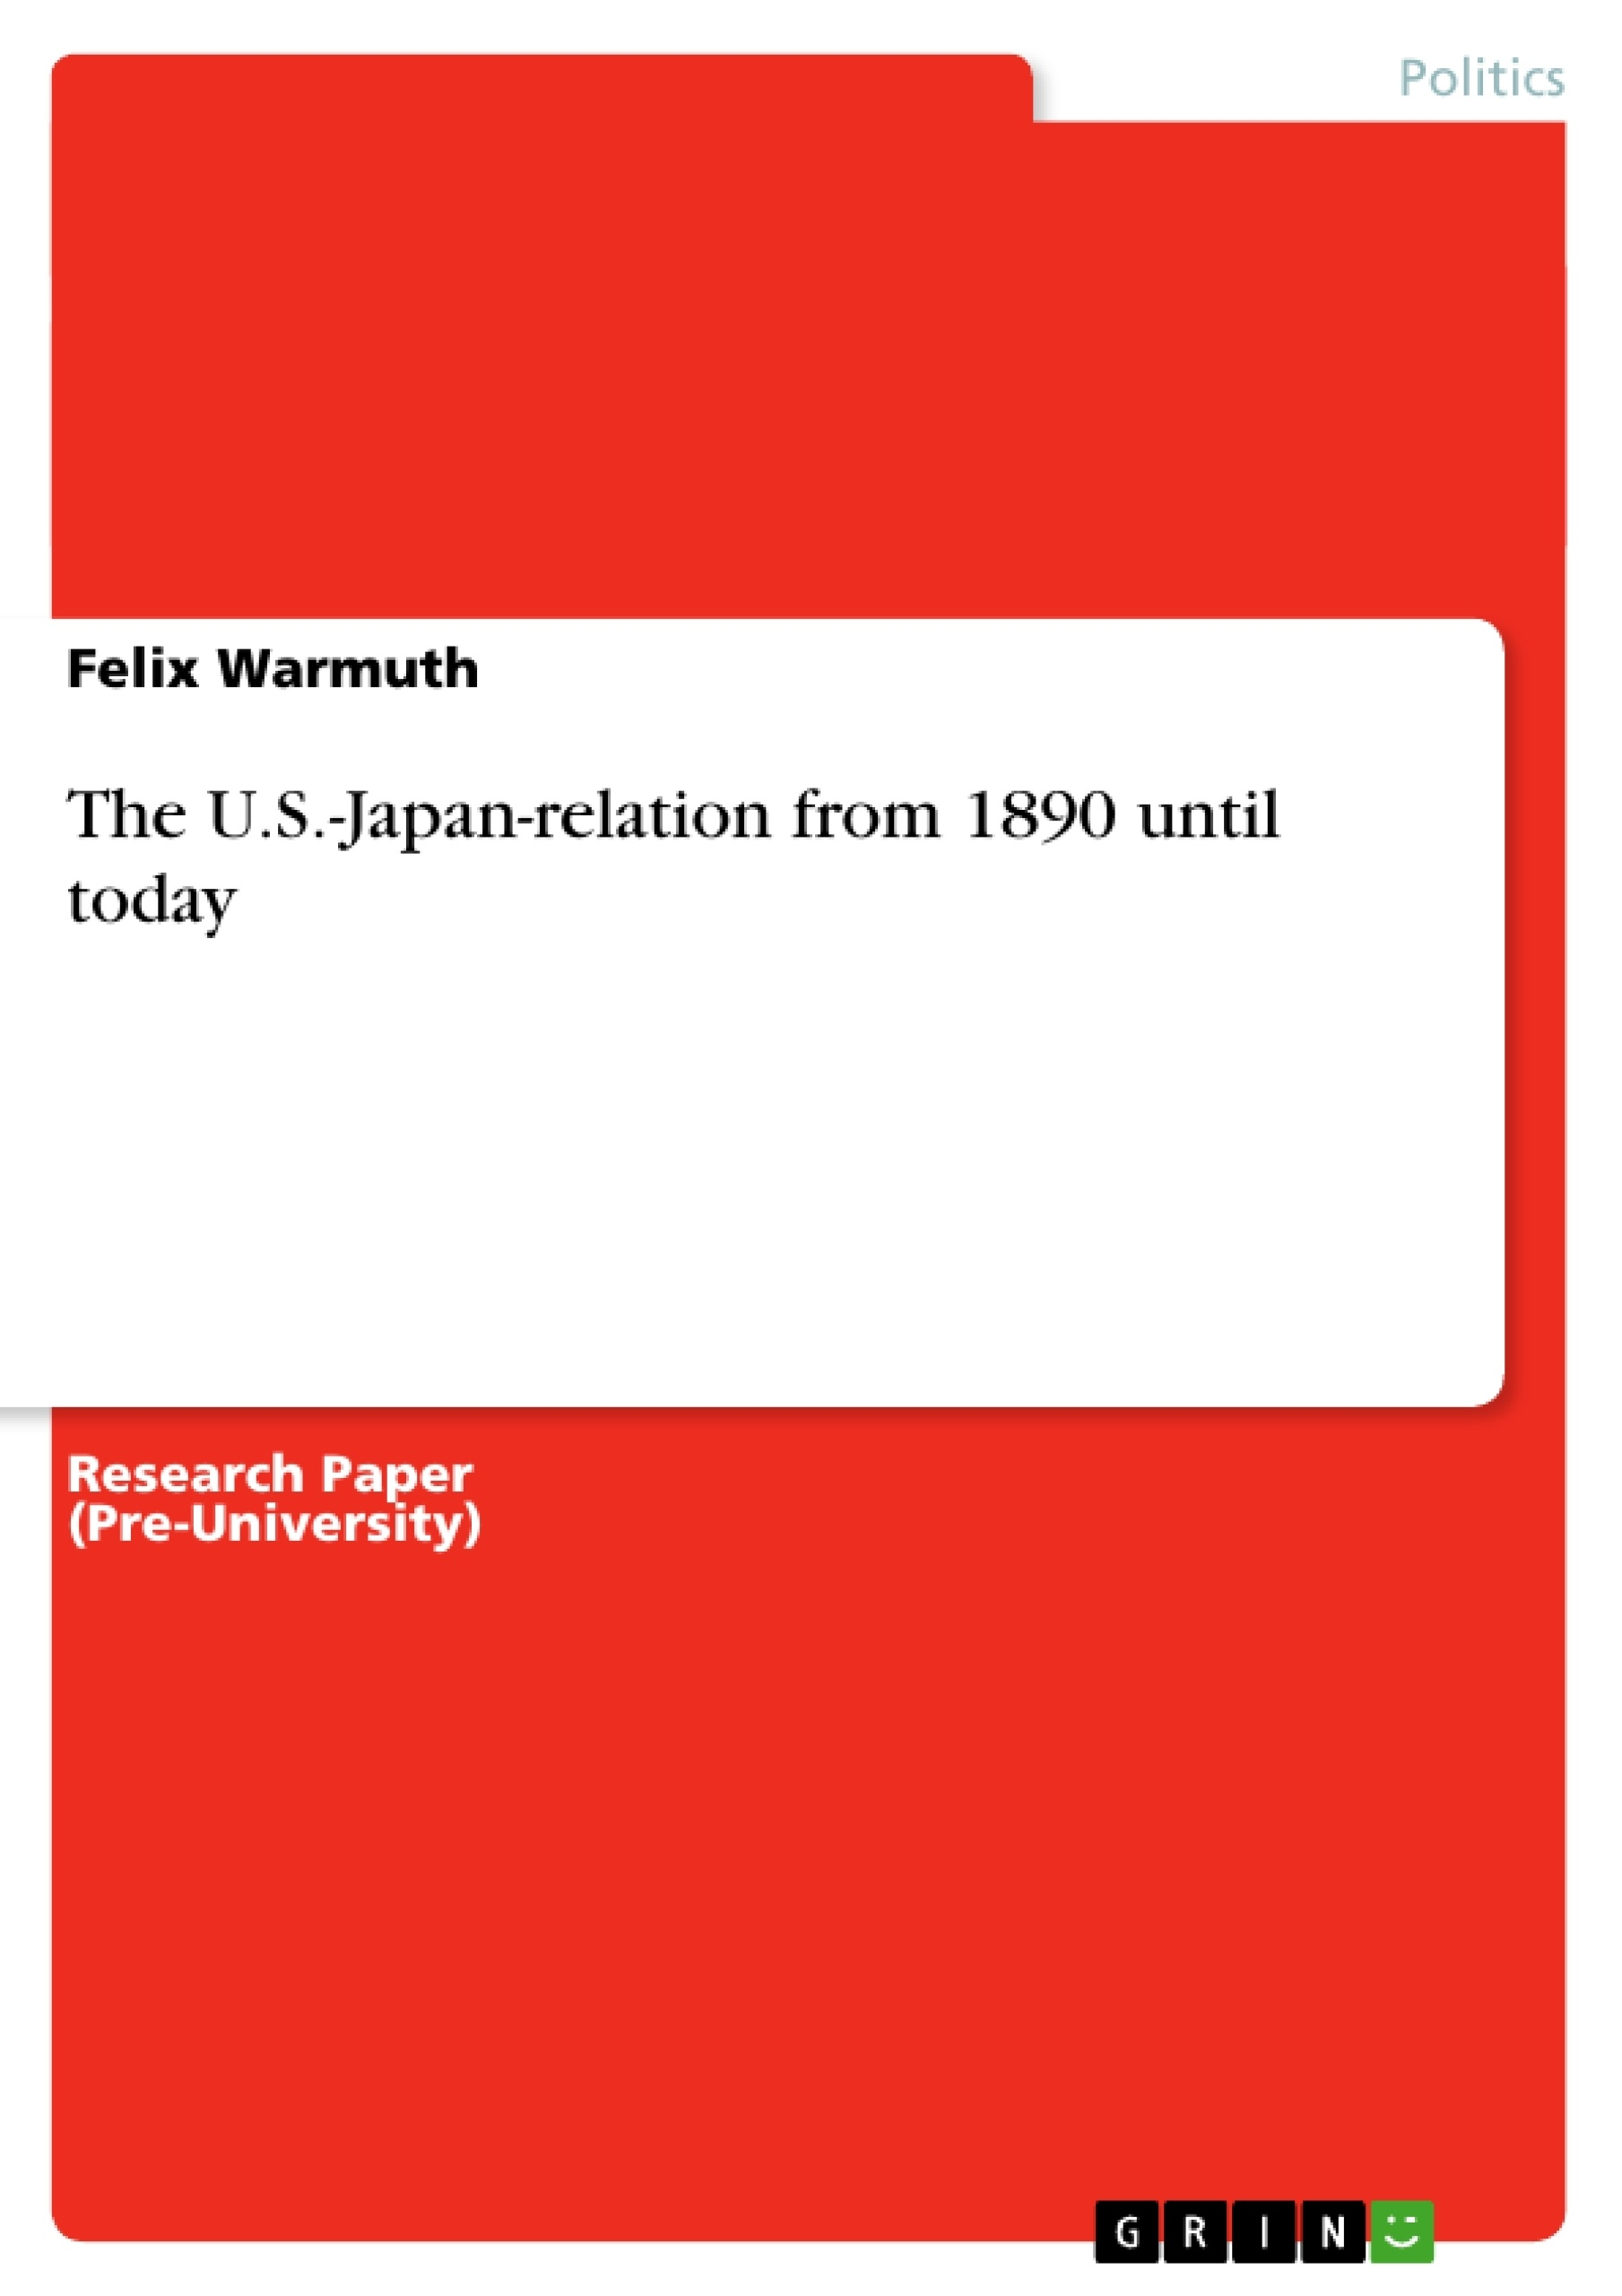 Title: The U.S.-Japan-relation from 1890 until today